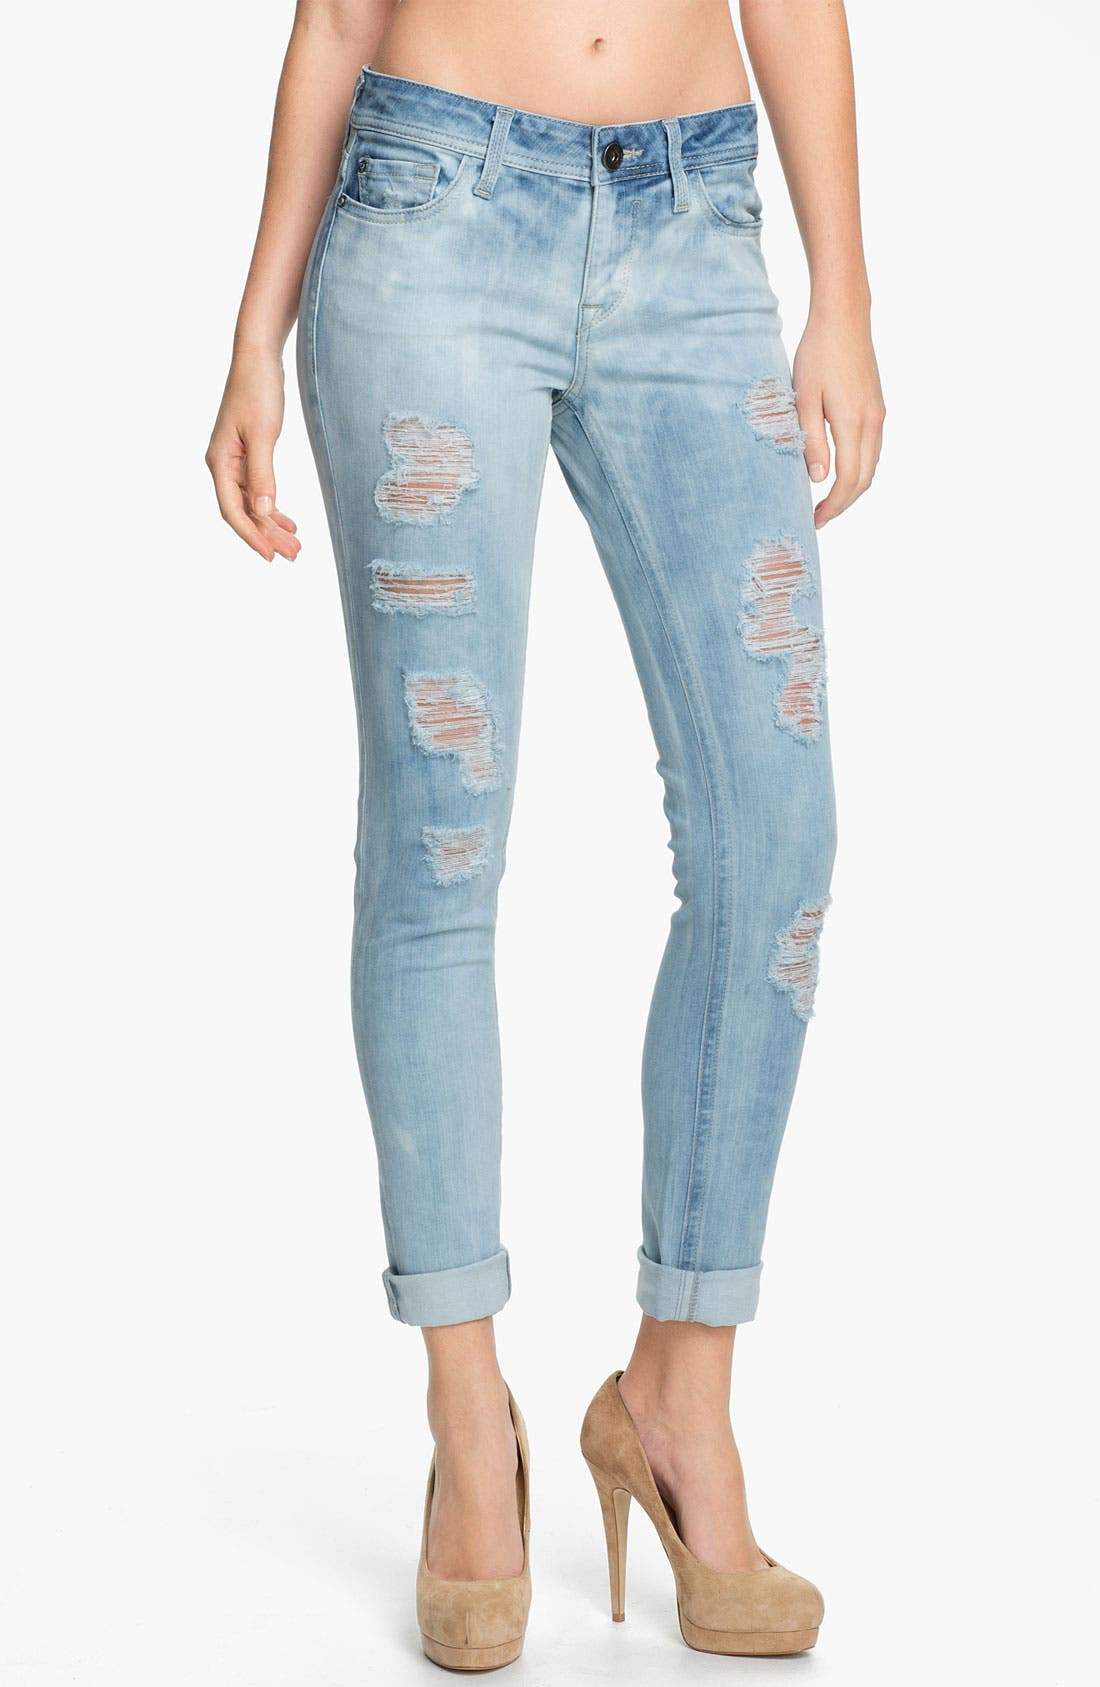 Main Image - DL1961 'Amanda'  X-Fit Stretch Destroyed Denim Skinny Jeans (Frenzy)